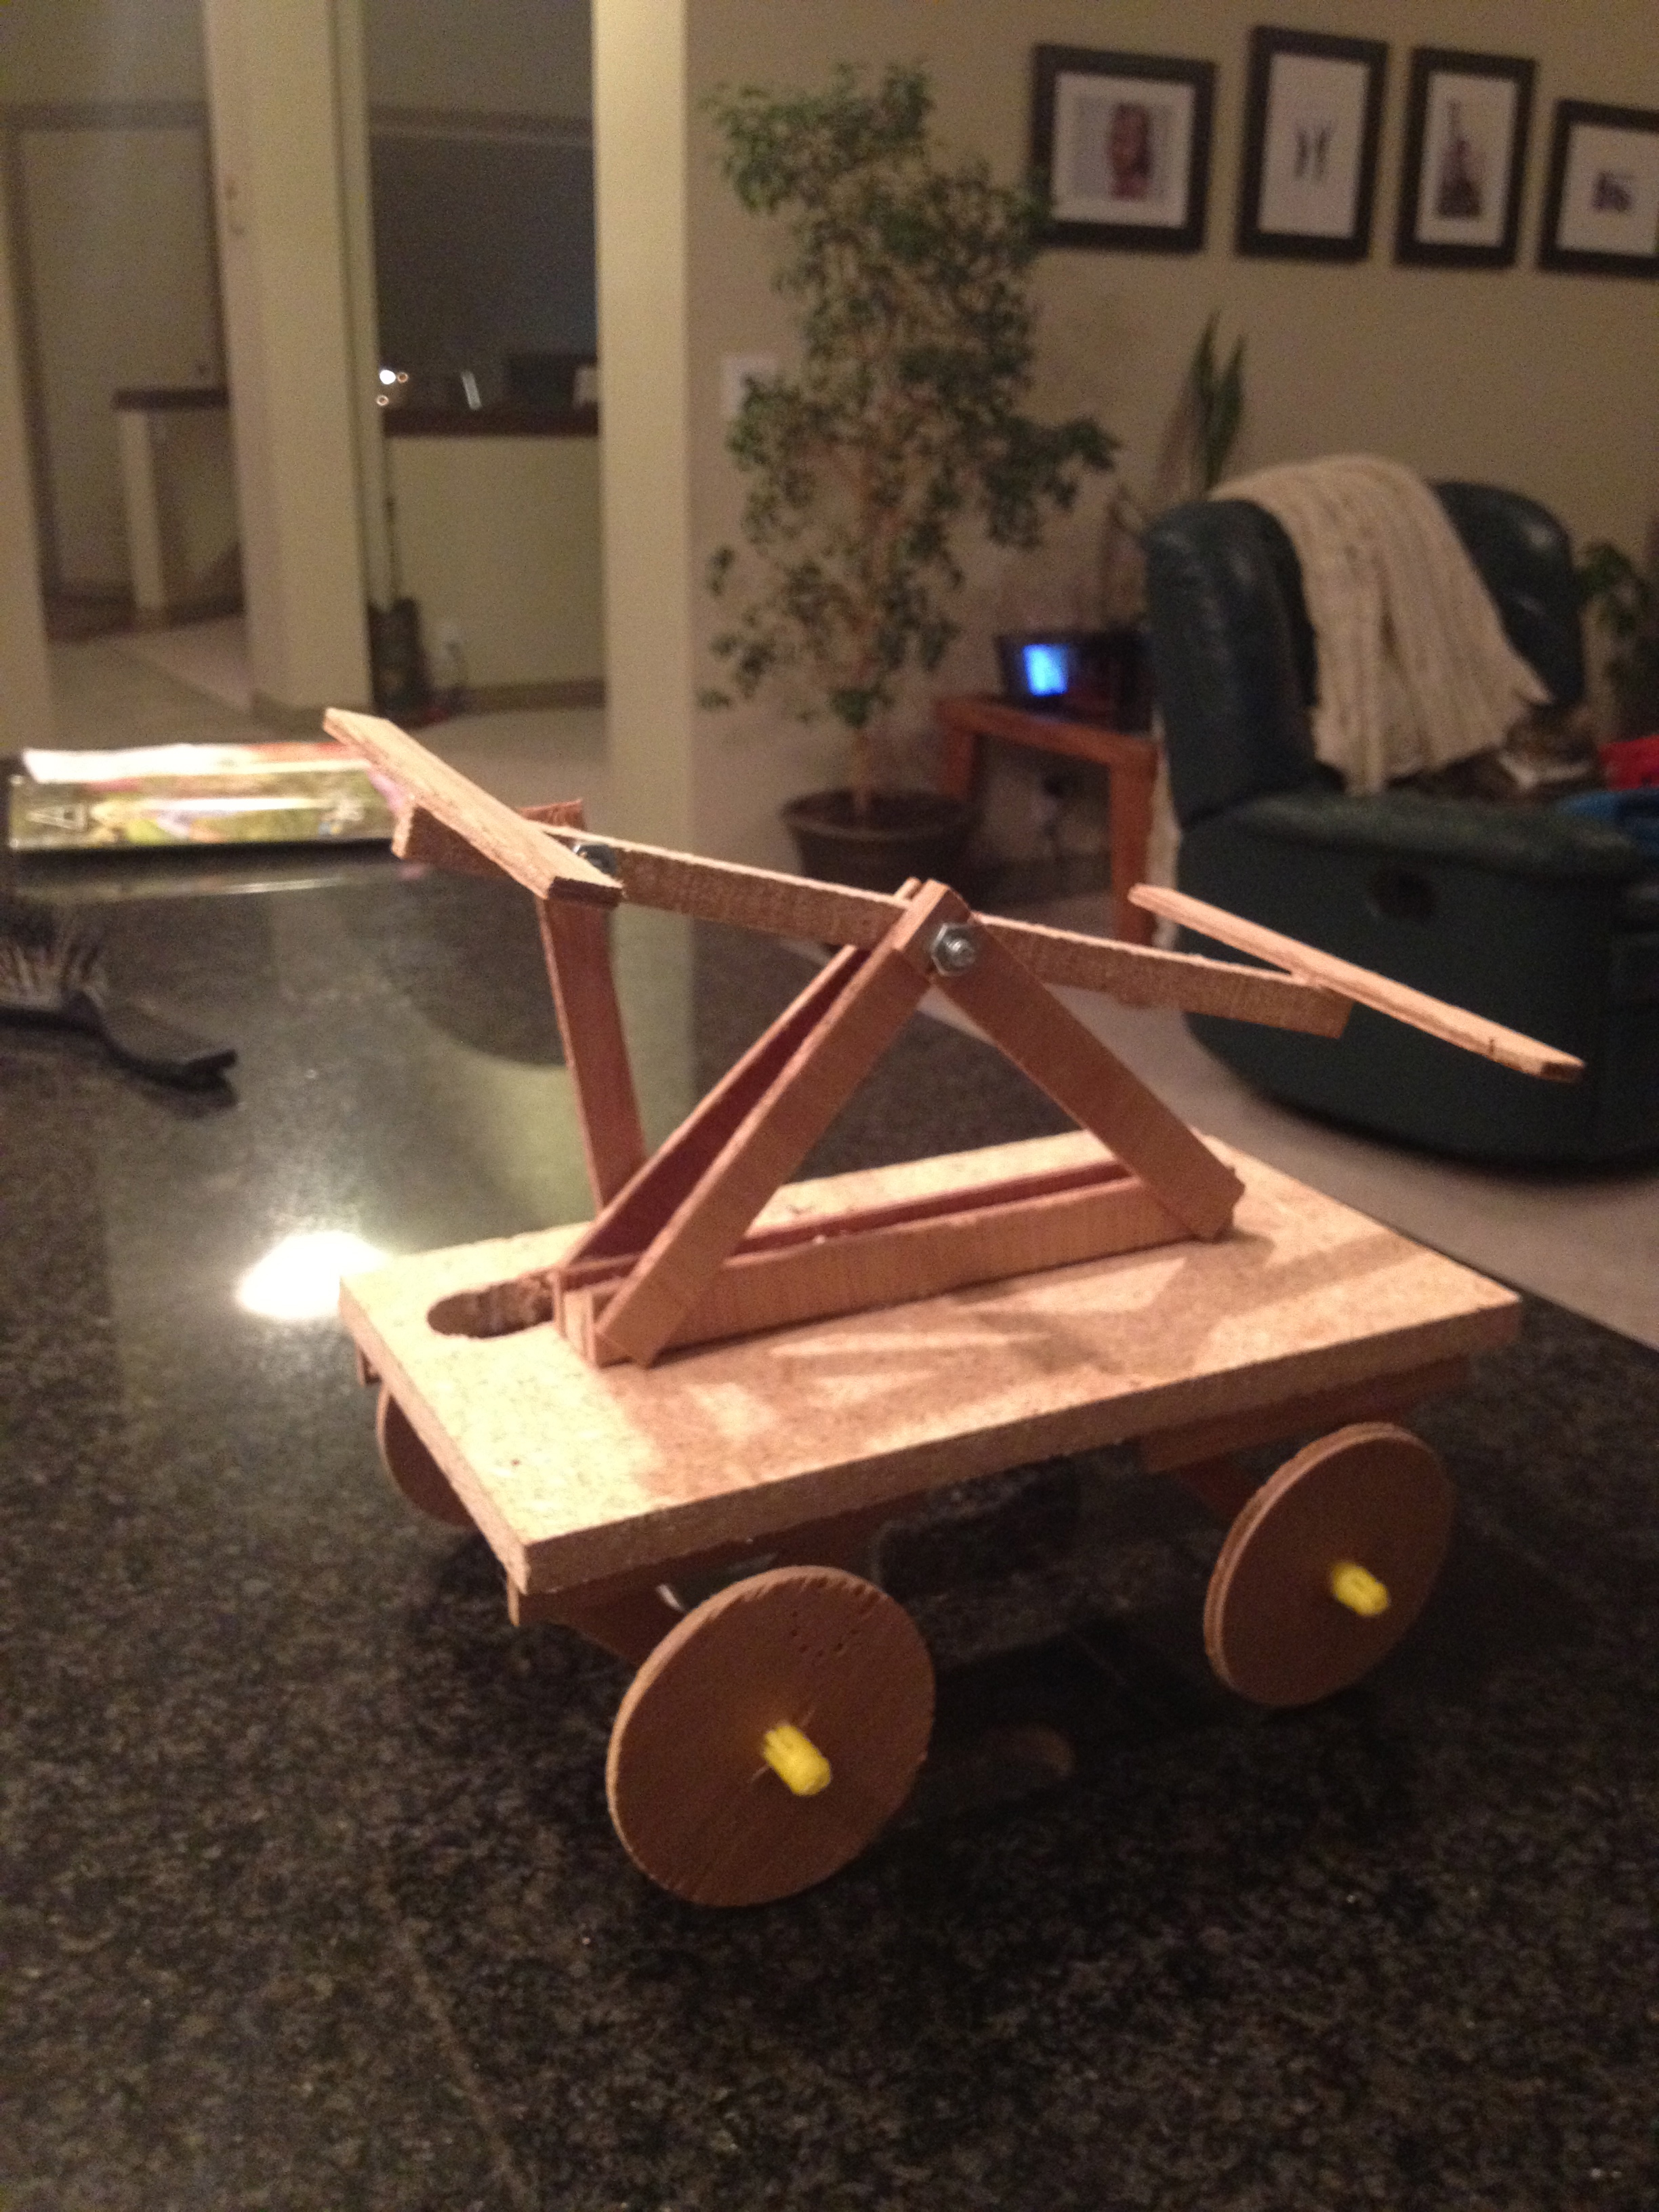 balsa wood projects for kids